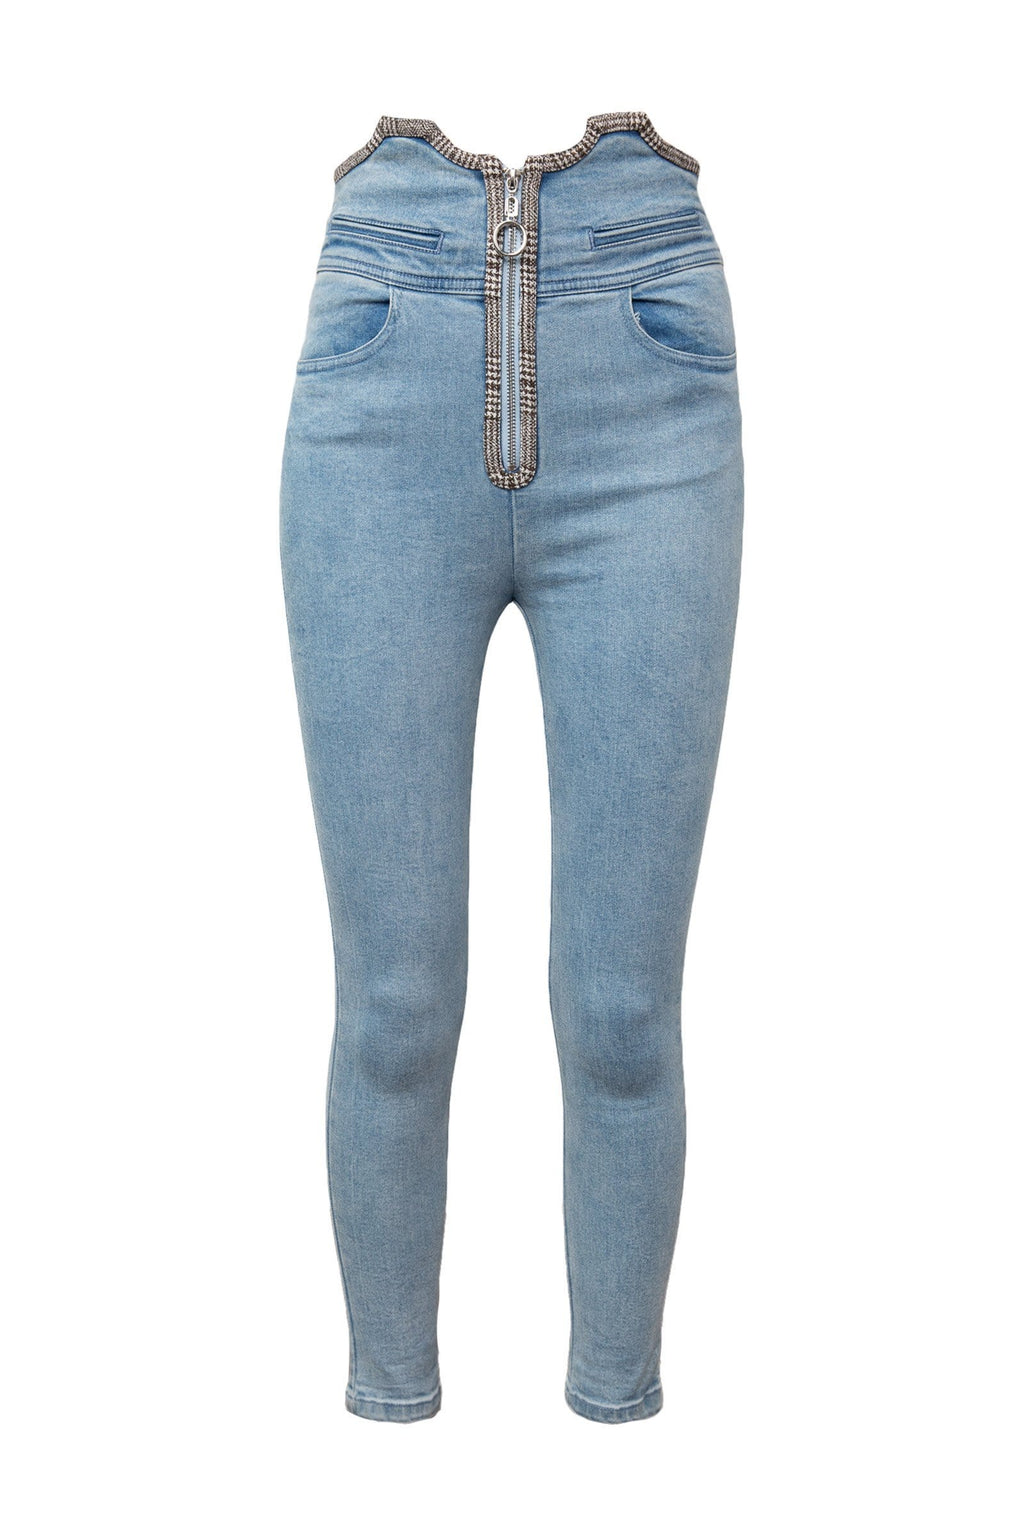 Squeeze Denim Cropped Skinny Jeans by J.ING women's clothing and accessories